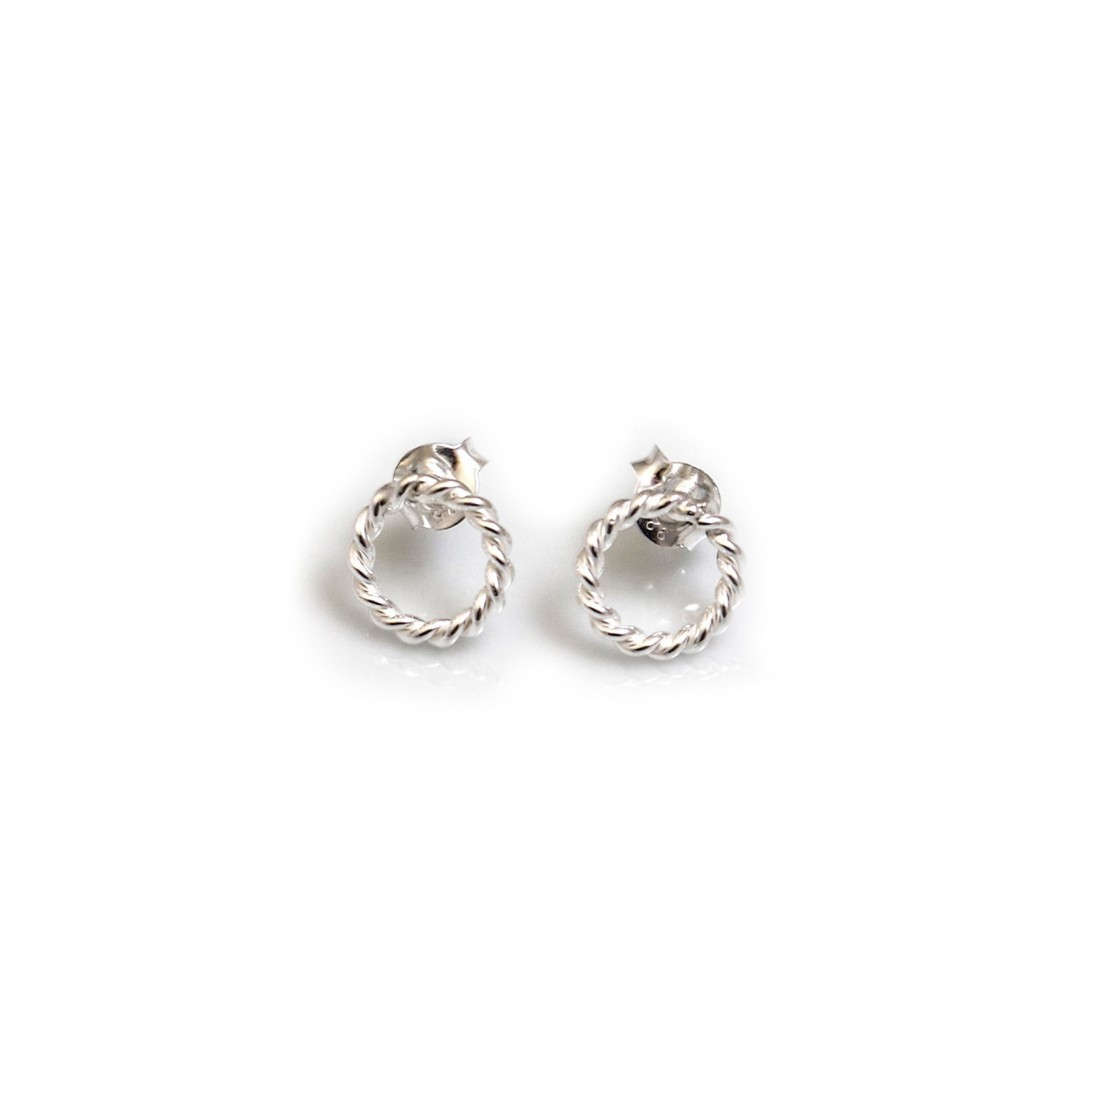 Sterling Silver Spiralled Hoop Stud Earrings